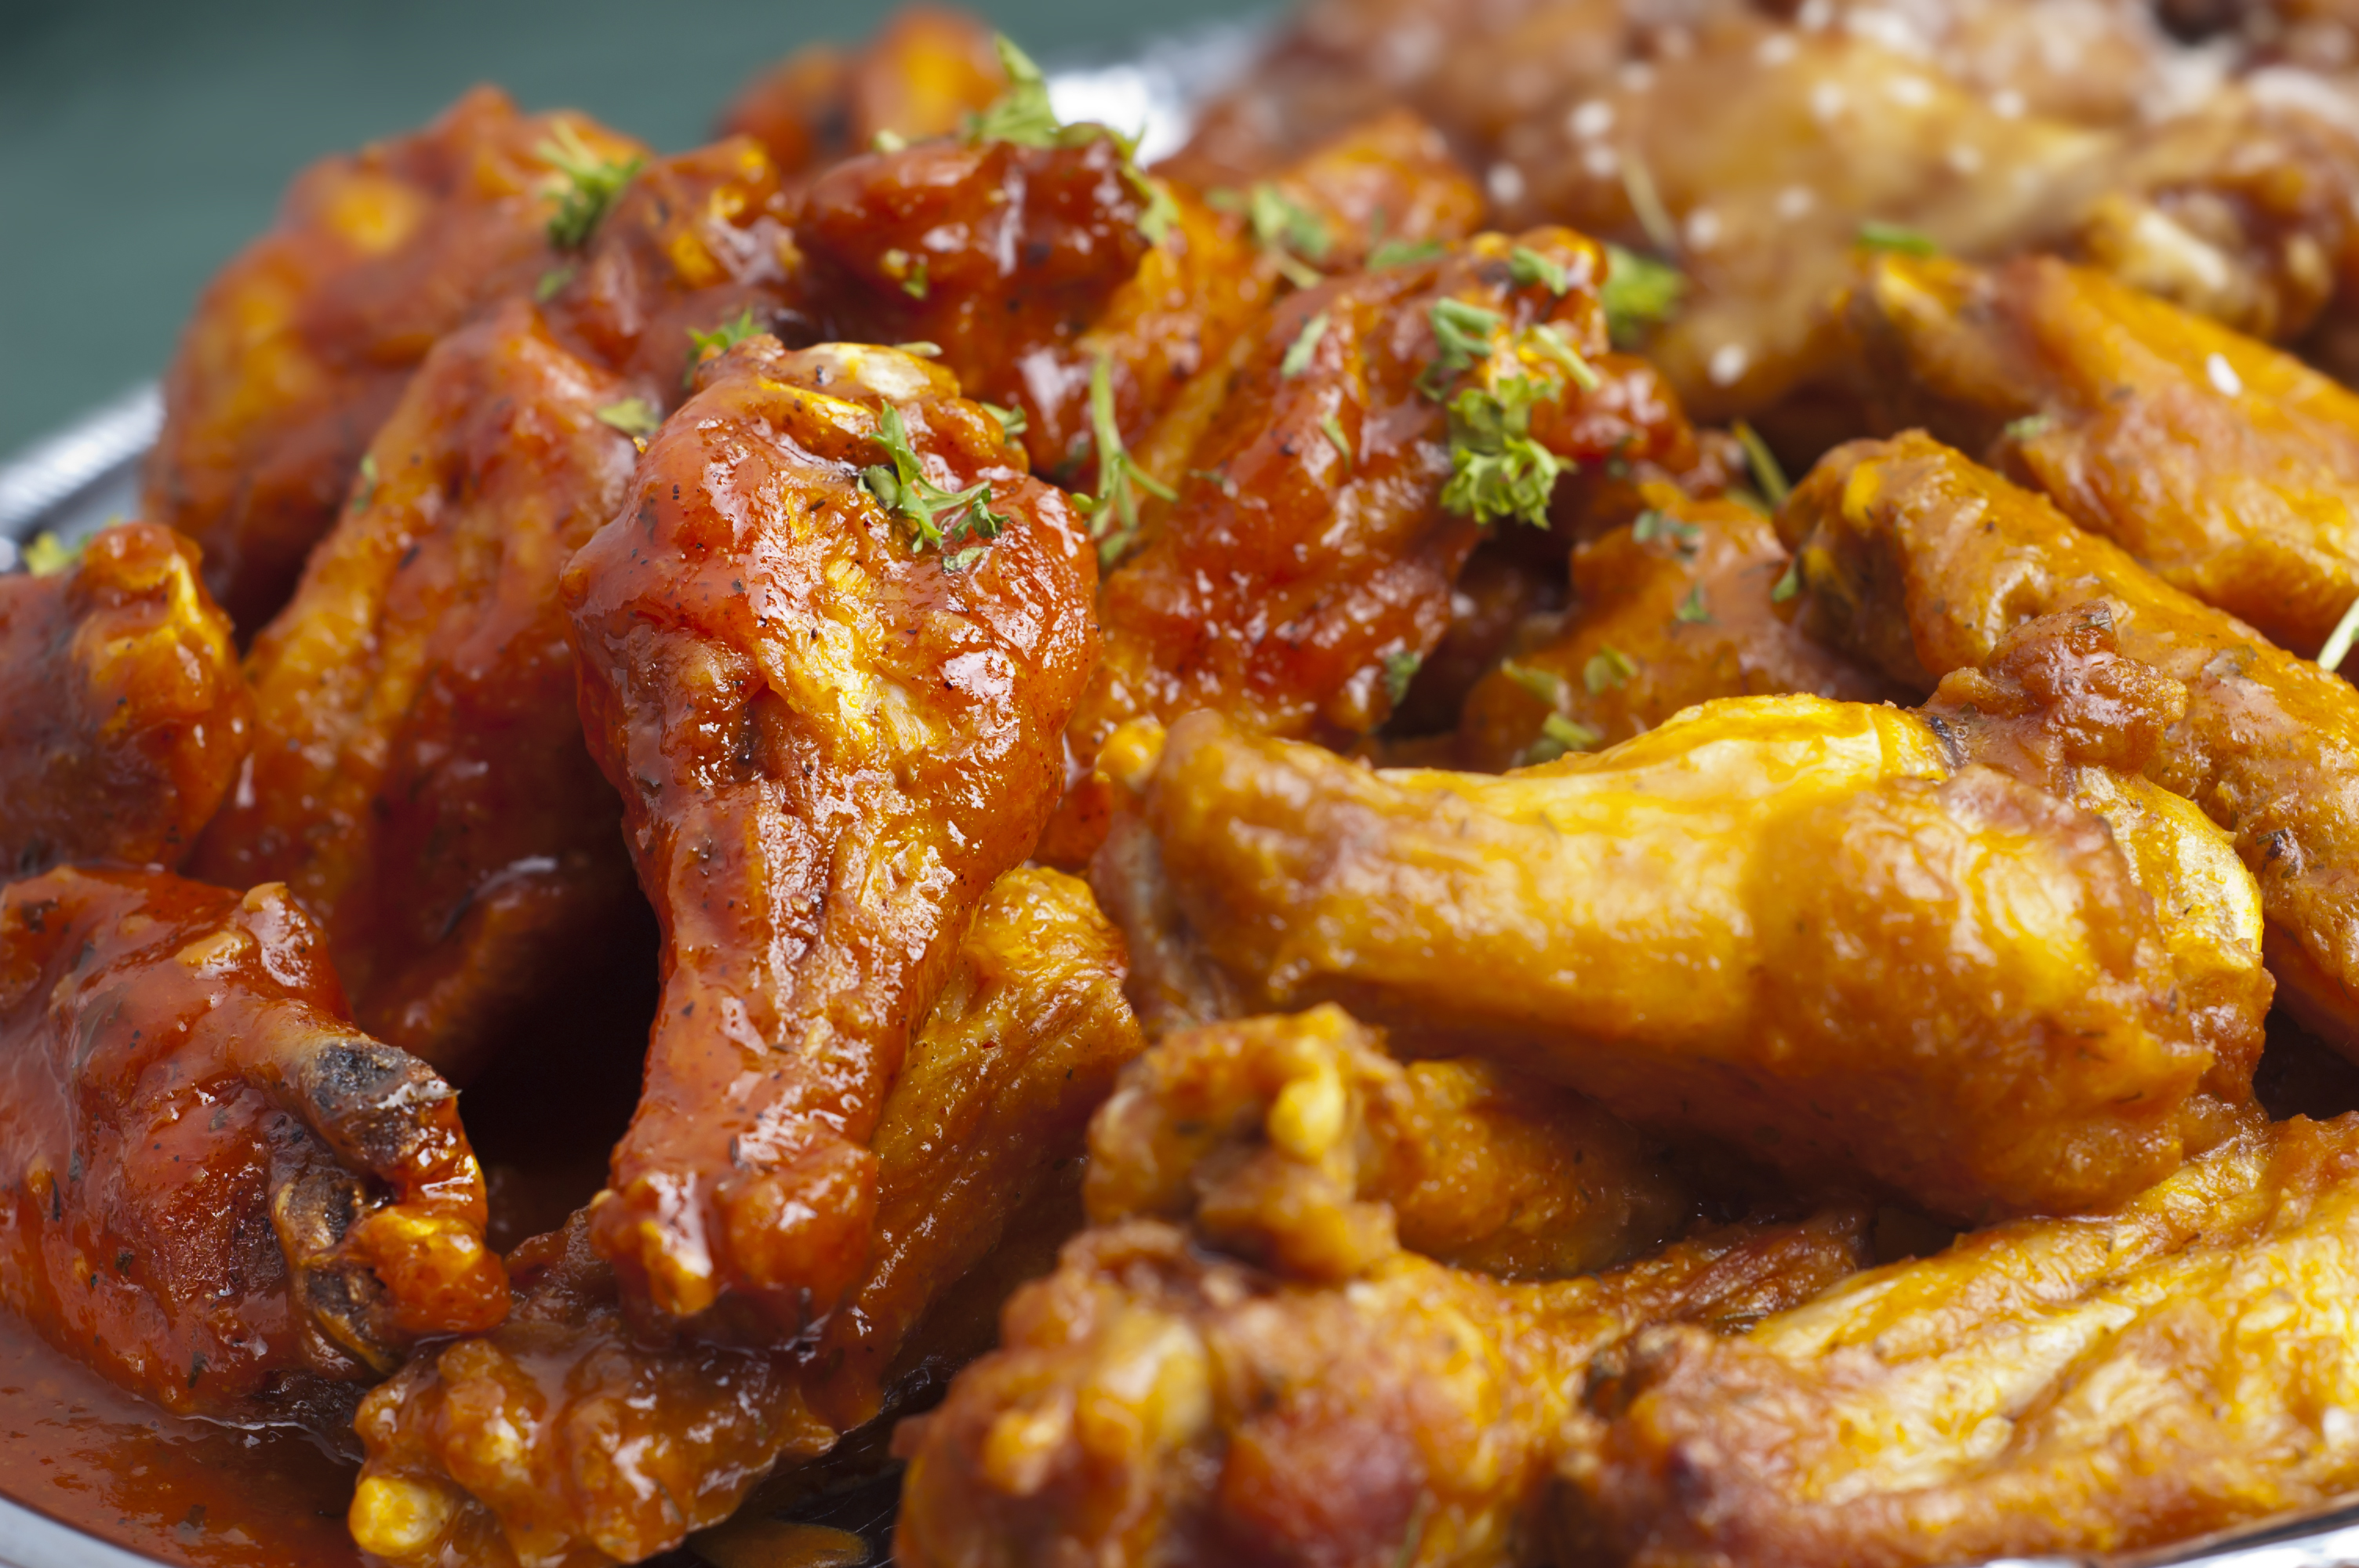 chicken wings, up close, covered in buffalo sauce.